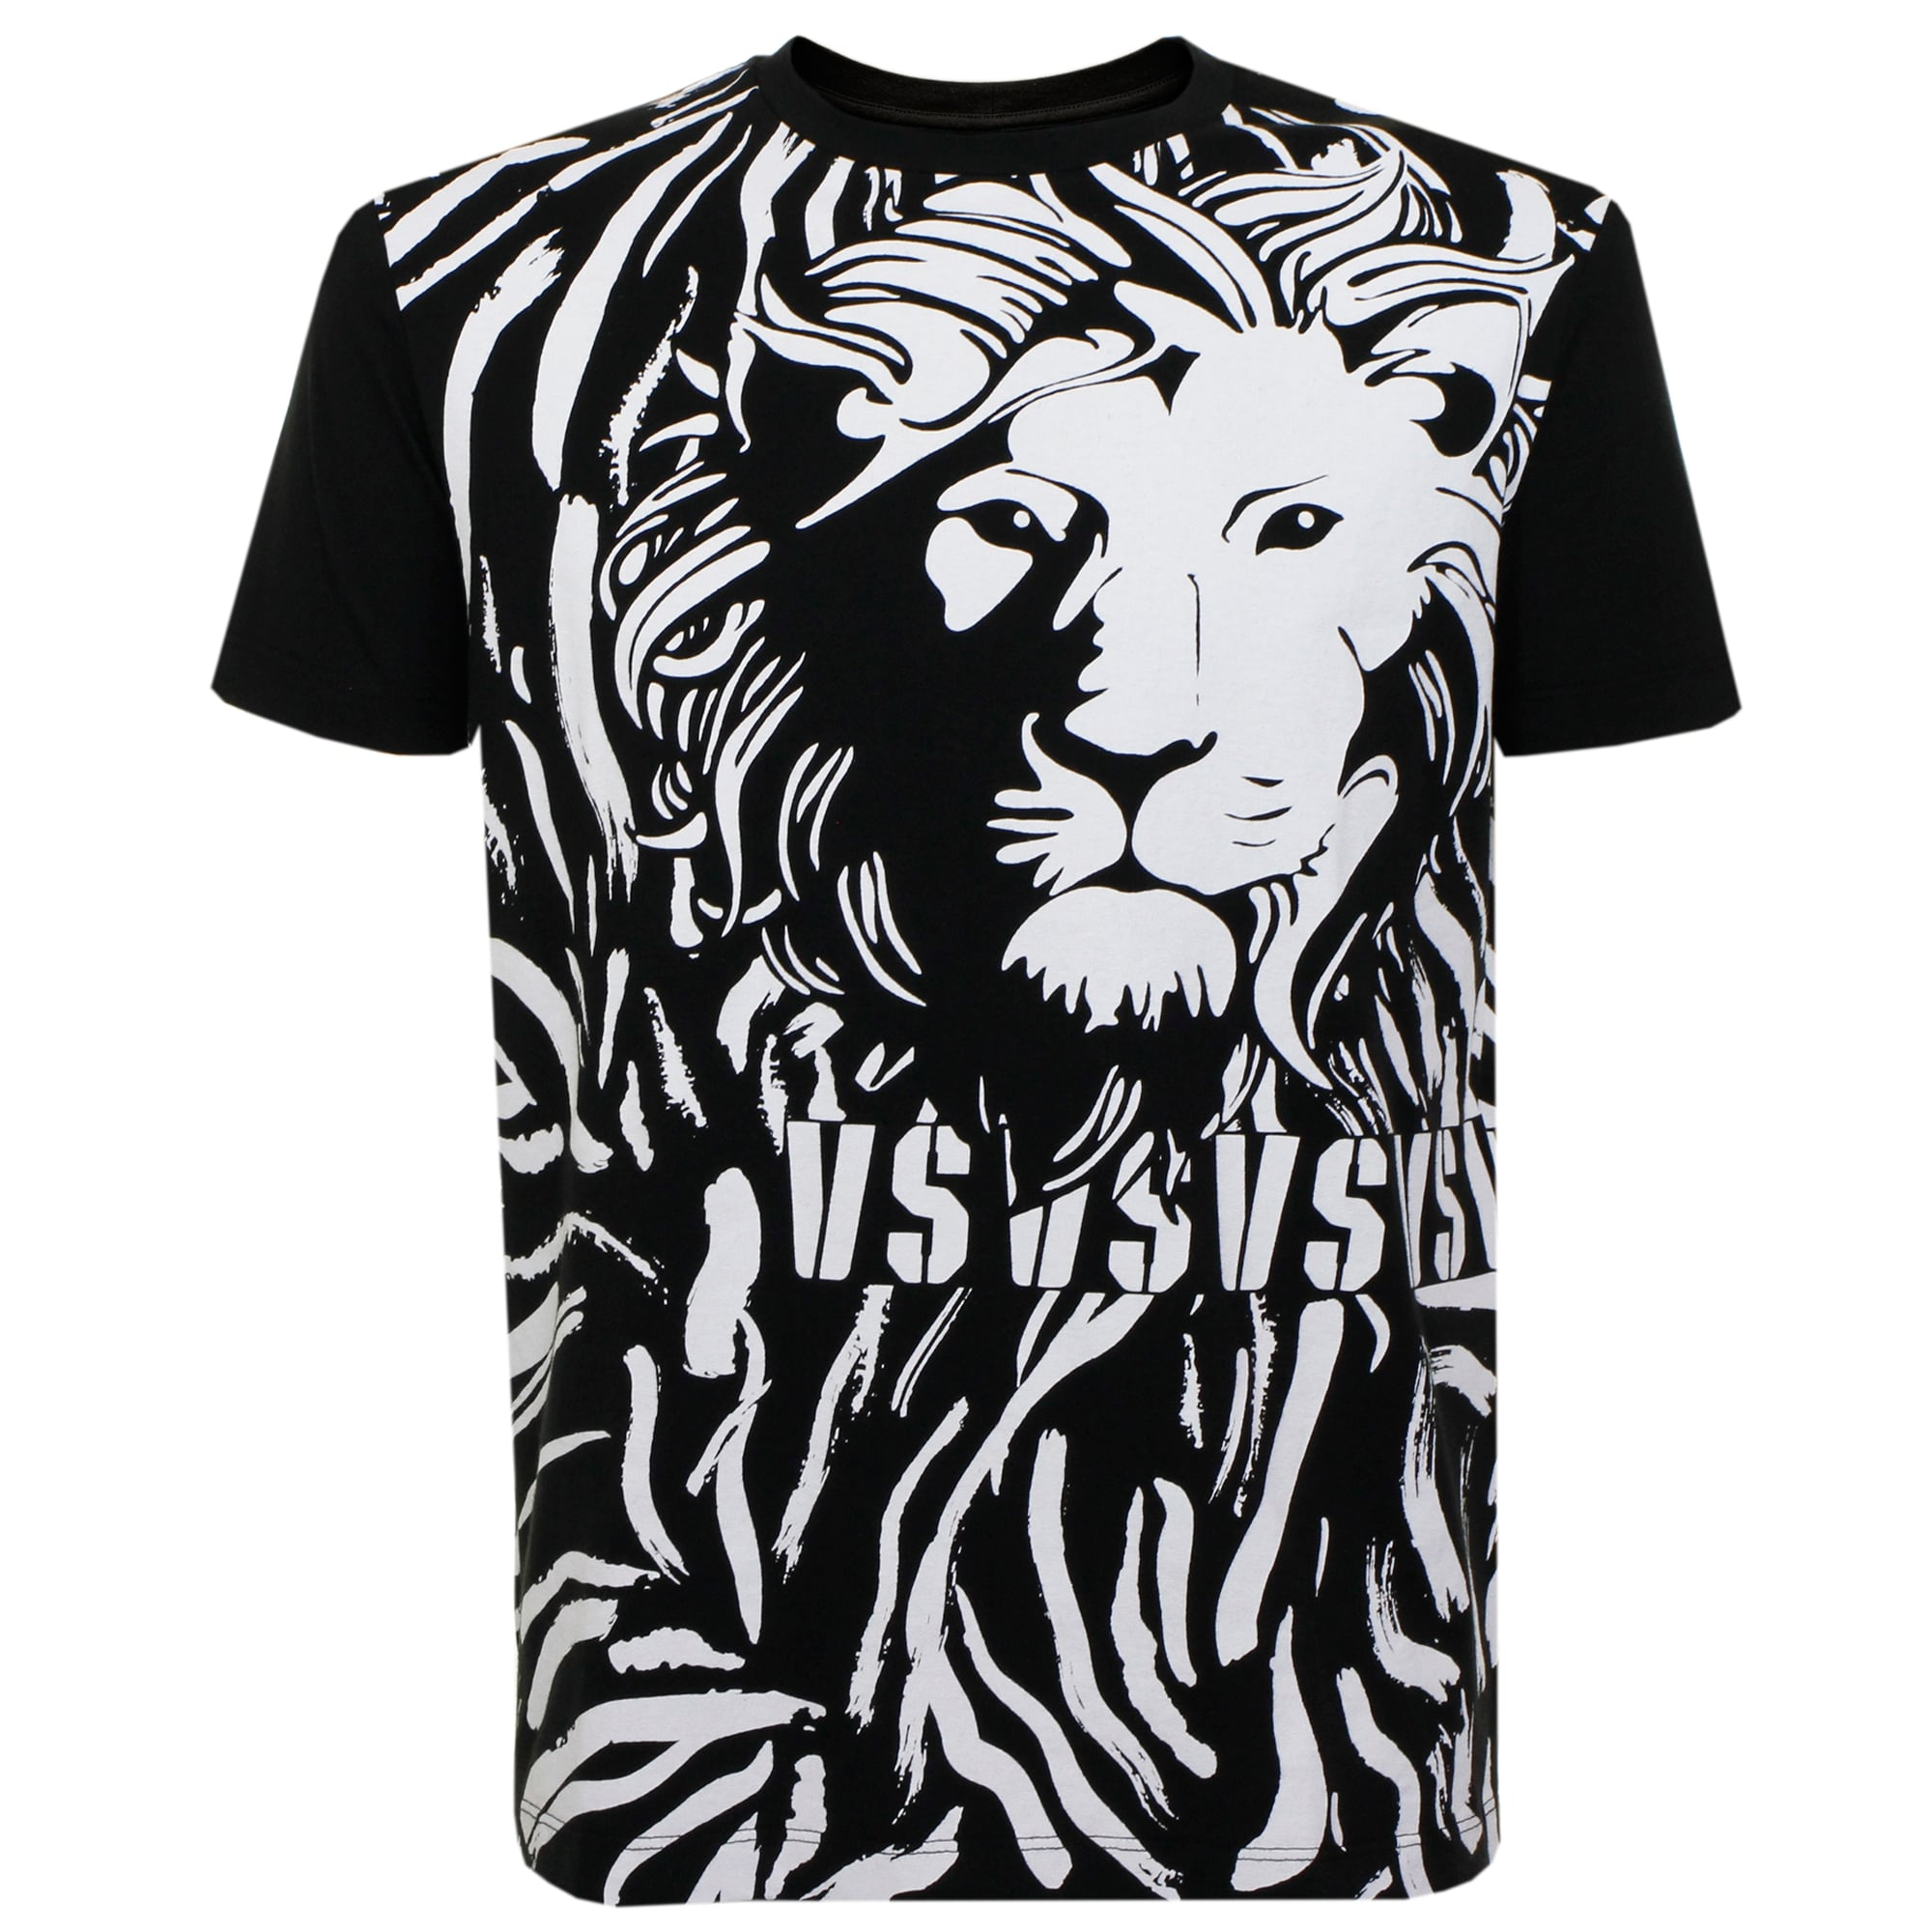 printed T-shirt - Black Versus High Quality Cheap Price Deals Free Shipping Big Sale Sale Online Store Clearance Affordable geyKx7a